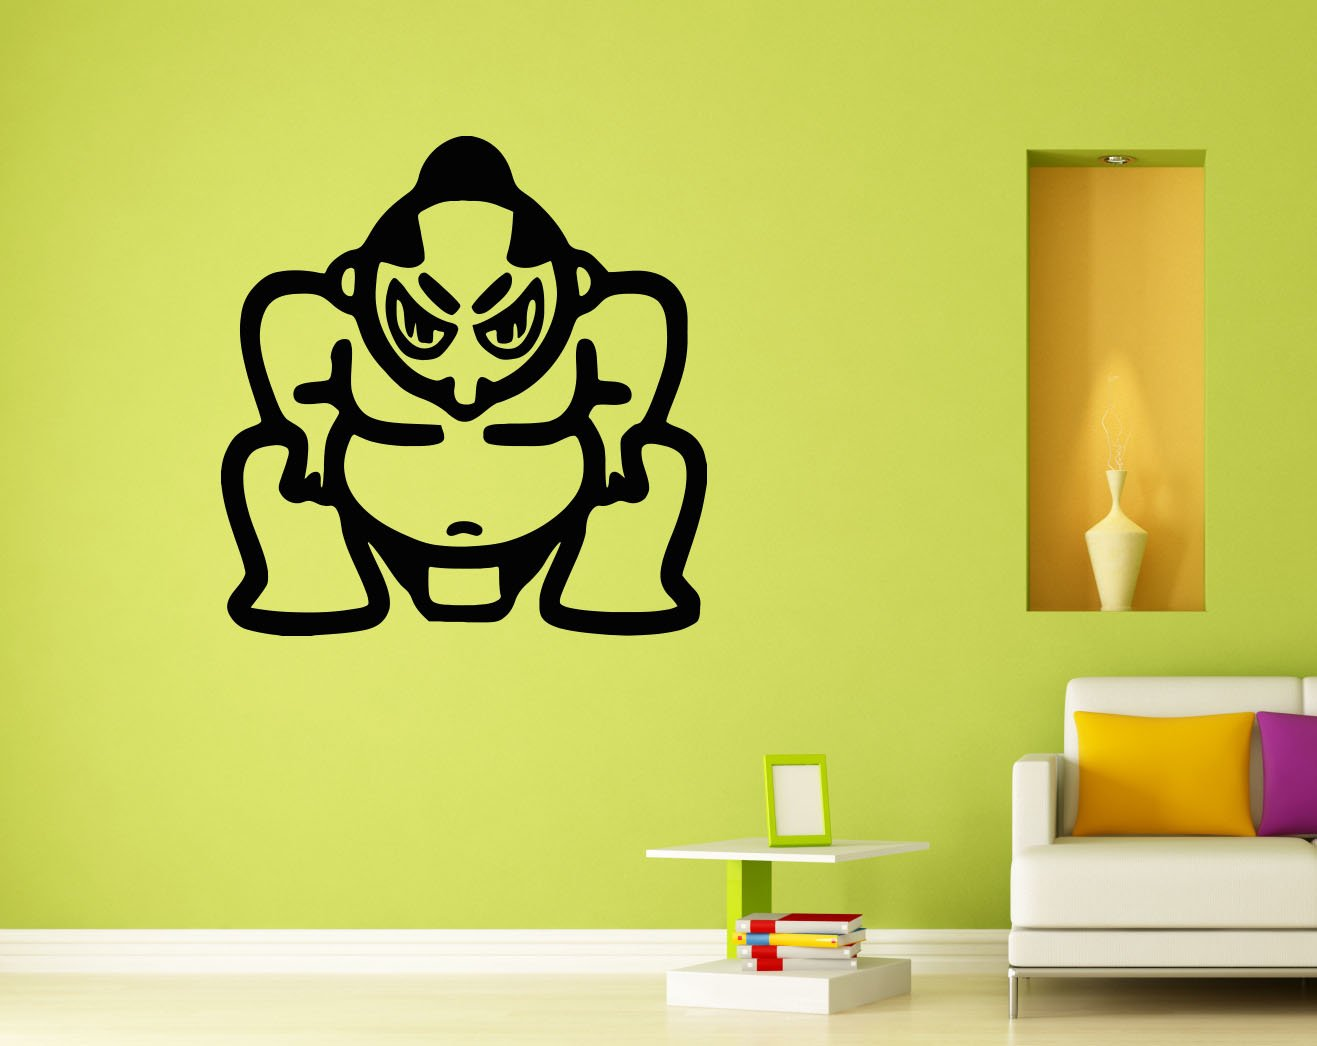 Sumo Wrestler Wall Decal Vinyl Sticker Wall Decor Removable Decal ...